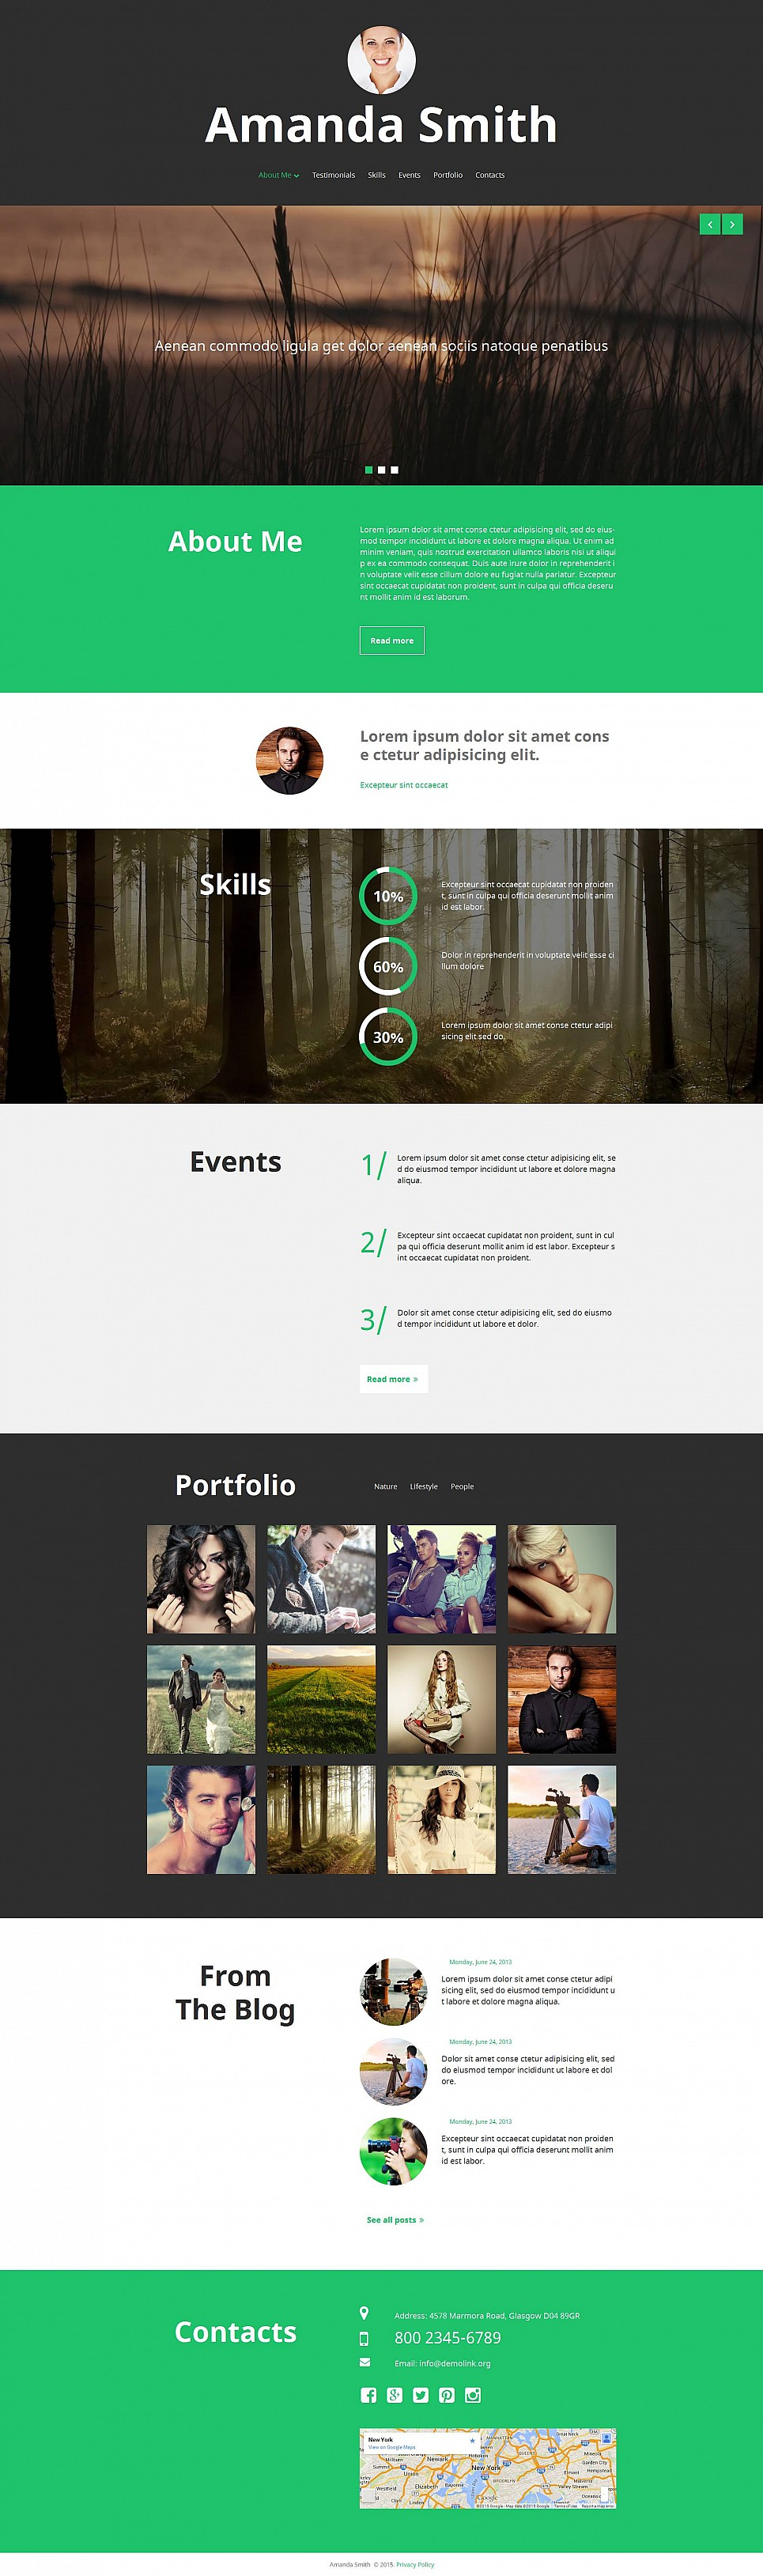 Photographer Web Page - image